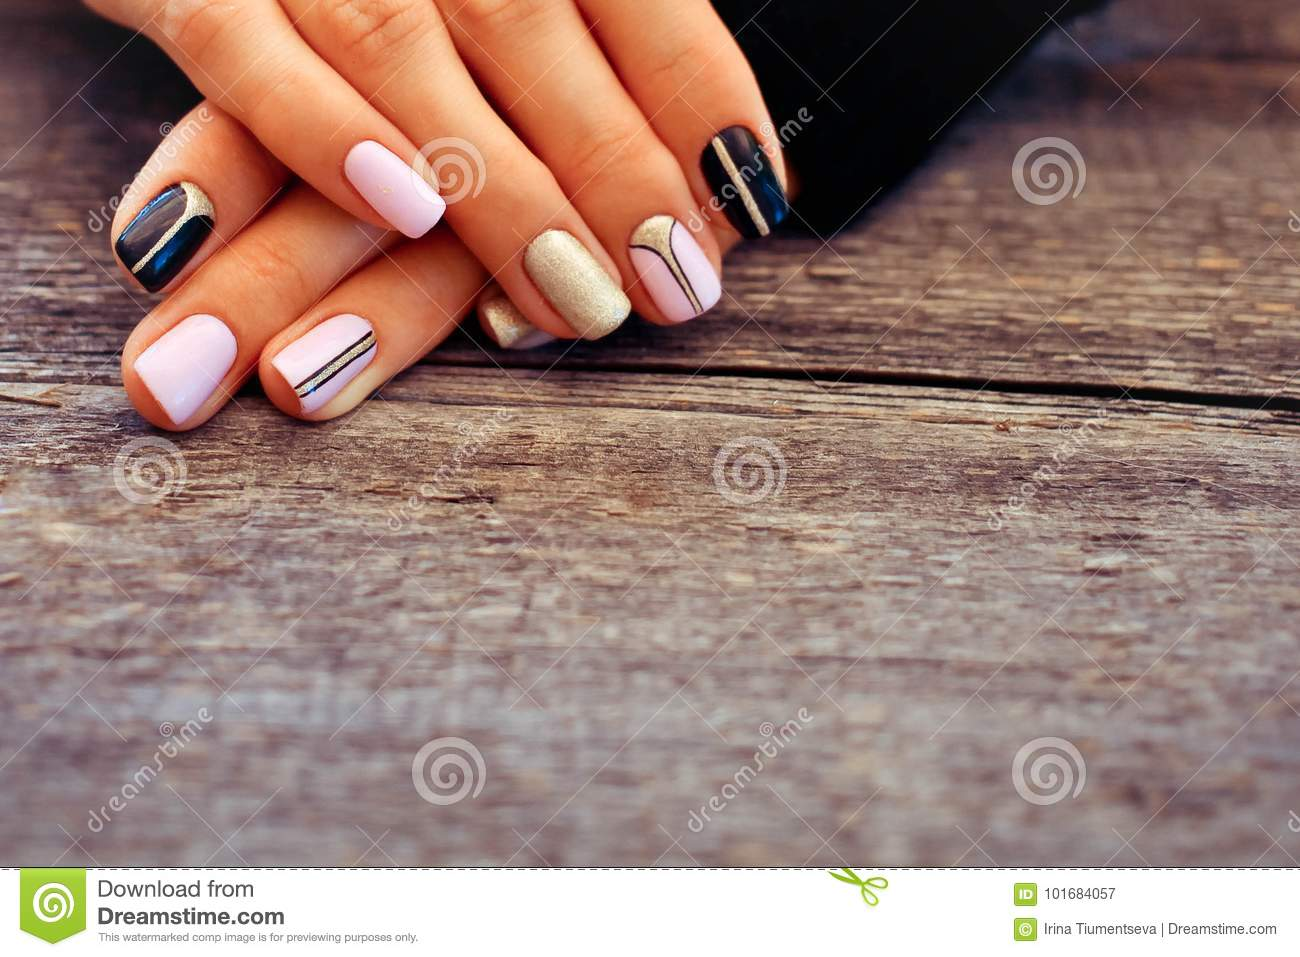 Natural nails, gel polish. stock image. Image of finger - 101684057